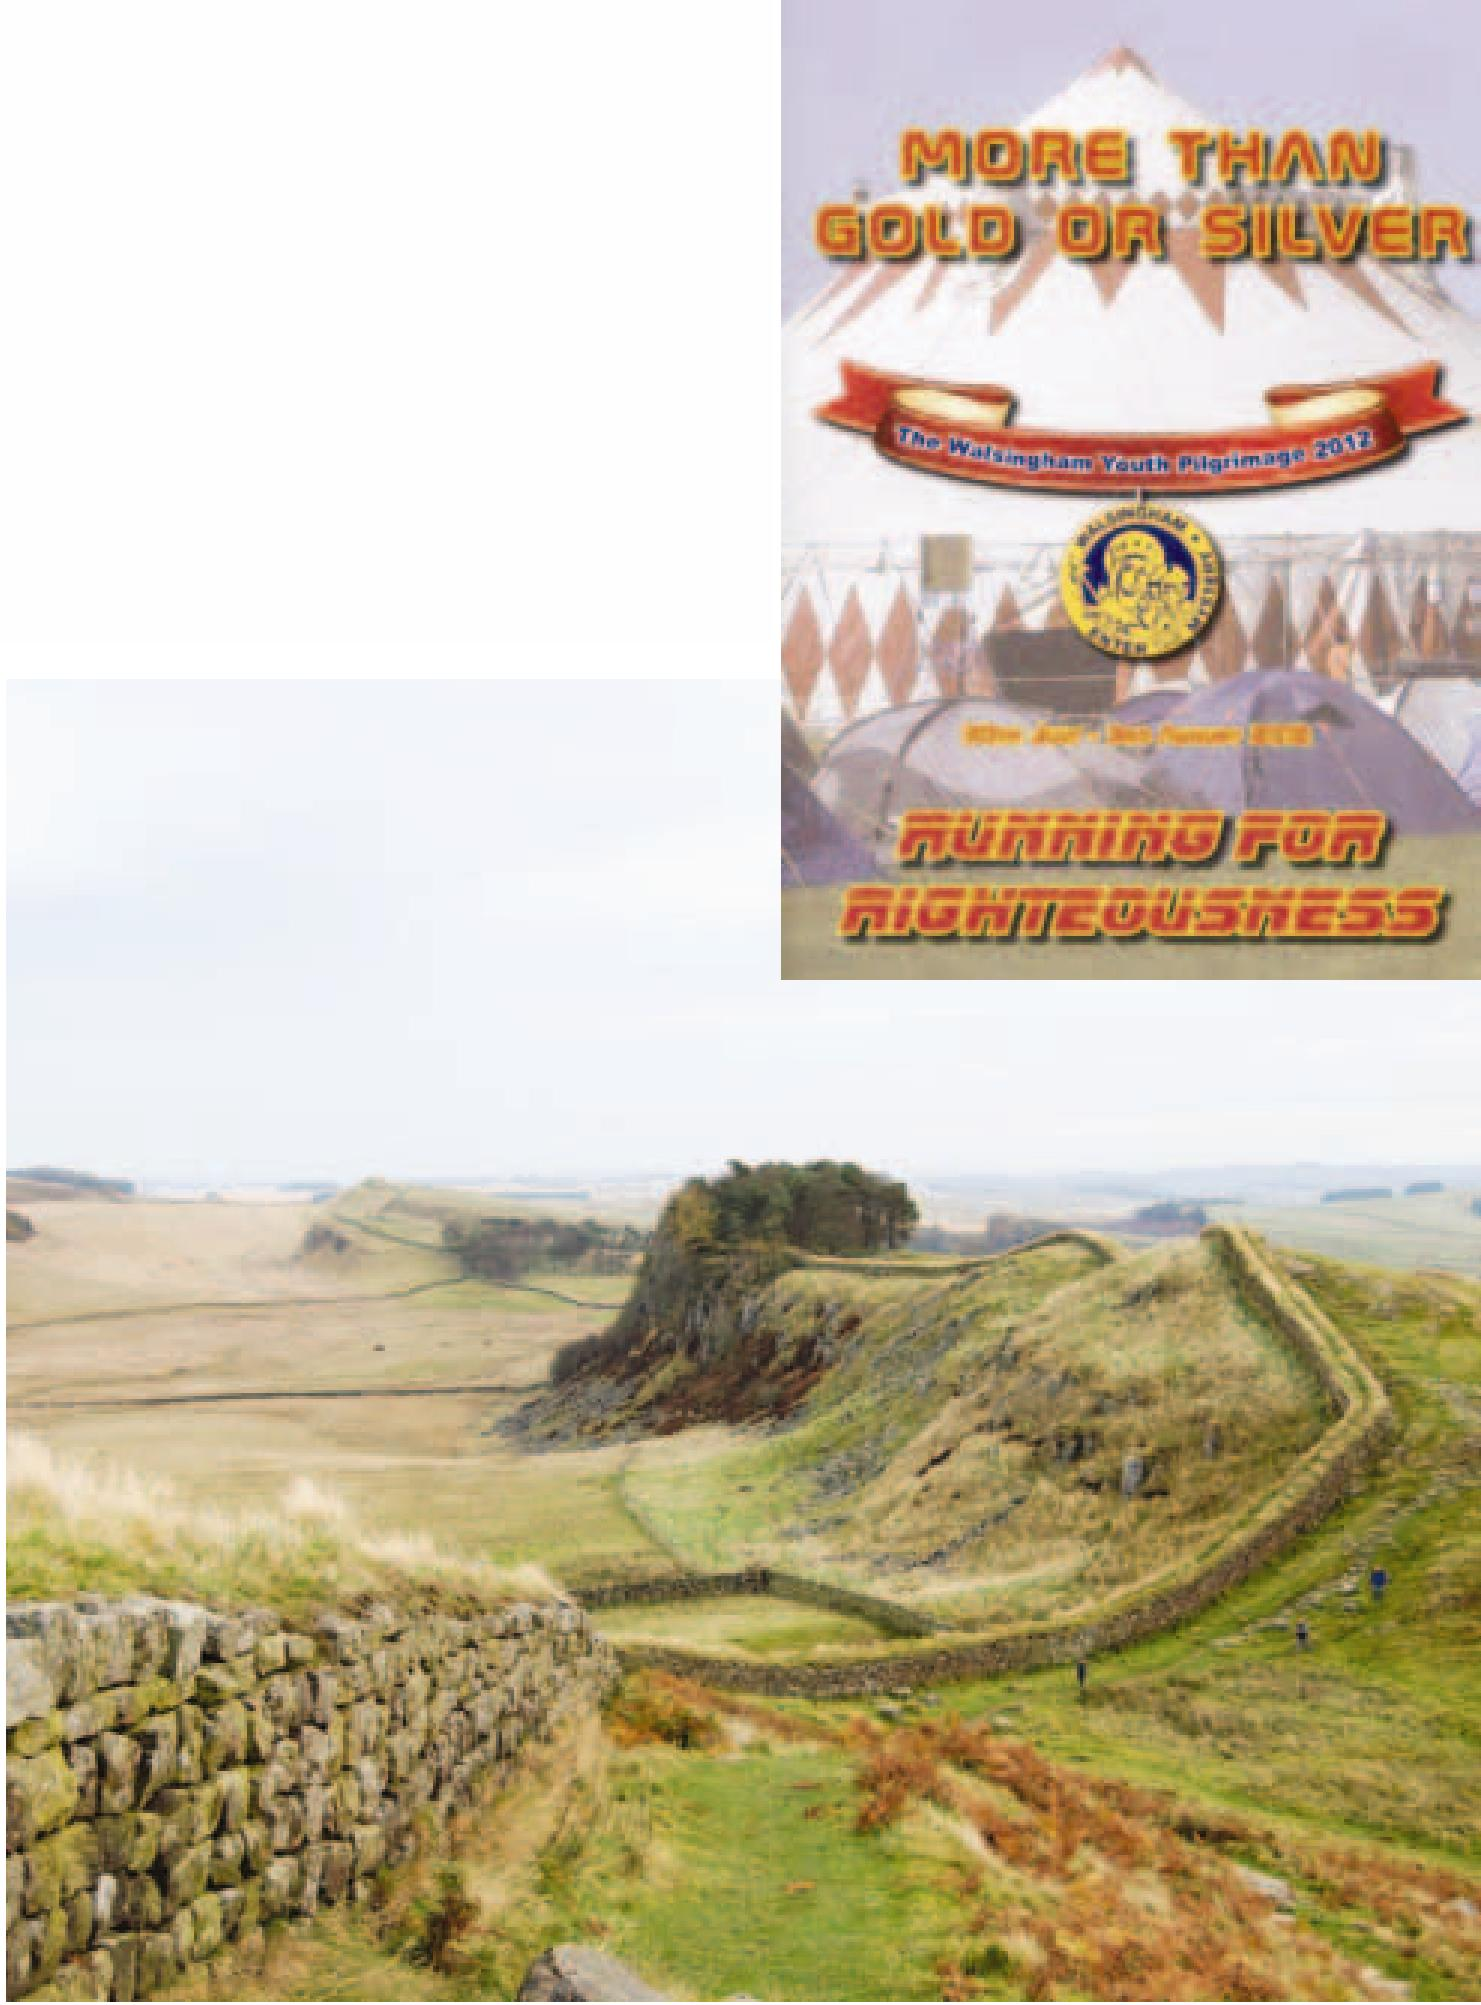 solway christian personals Looking for self drive or private guided tours in england exploring vacations offer fully customizable tour packages at affordable prices the scope of tour ranges from brief excursions to cultural dynamos like london to extensive tours of britain.